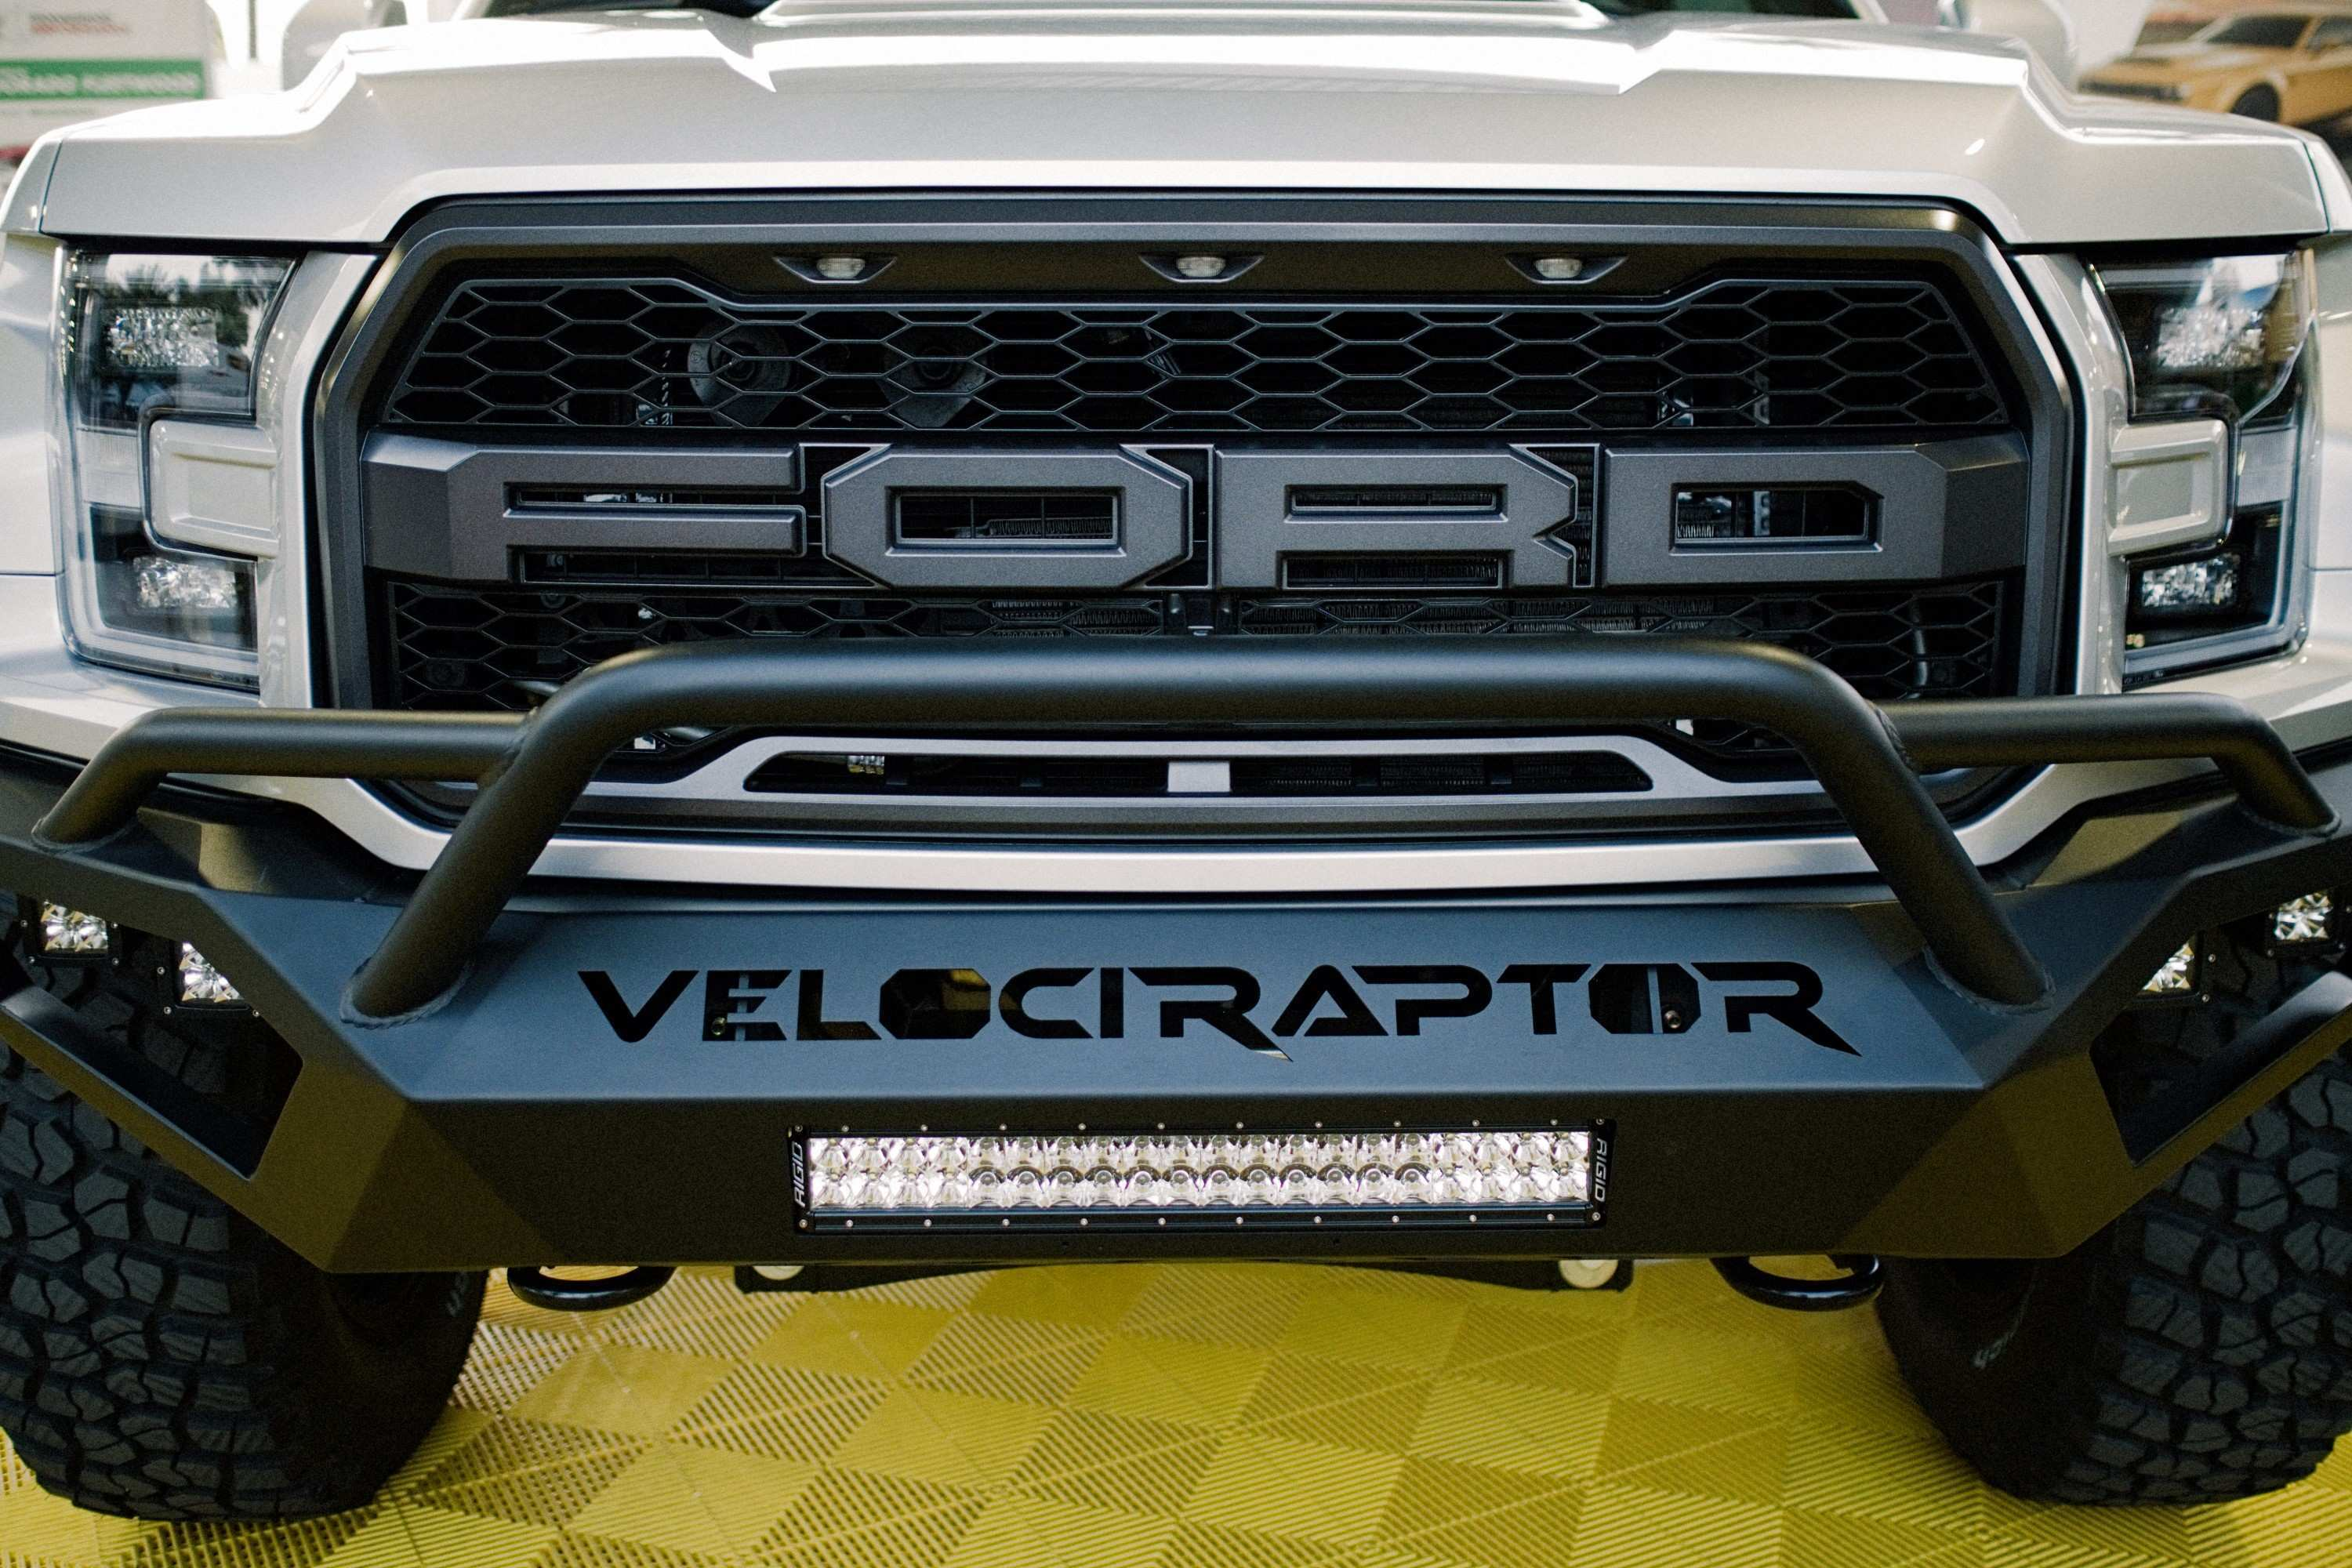 88 Gallery of 2019 Ford Velociraptor Configurations with 2019 Ford Velociraptor